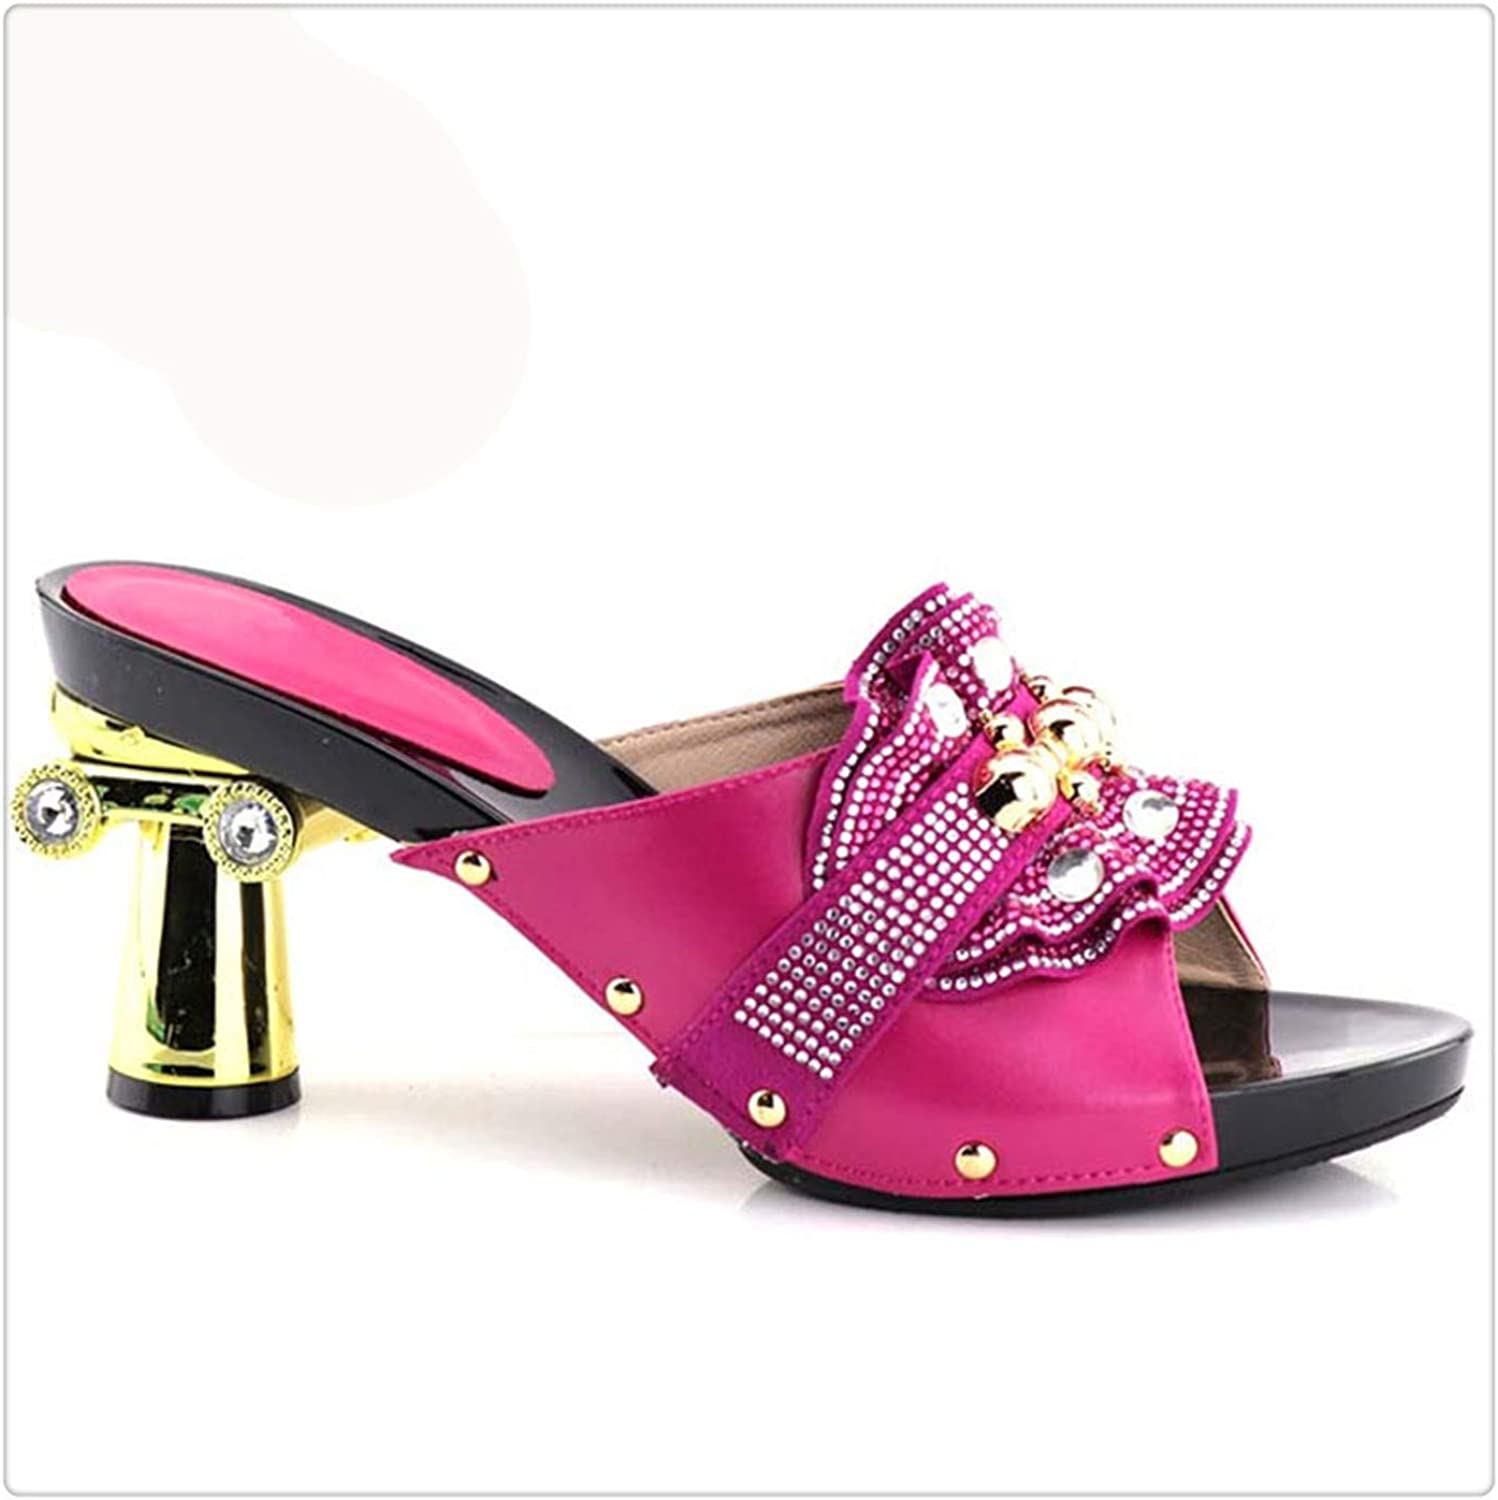 Dmoshibei Thin Heels 12.5cm shoes to Match Italian African Wedding shoes and Bag Set